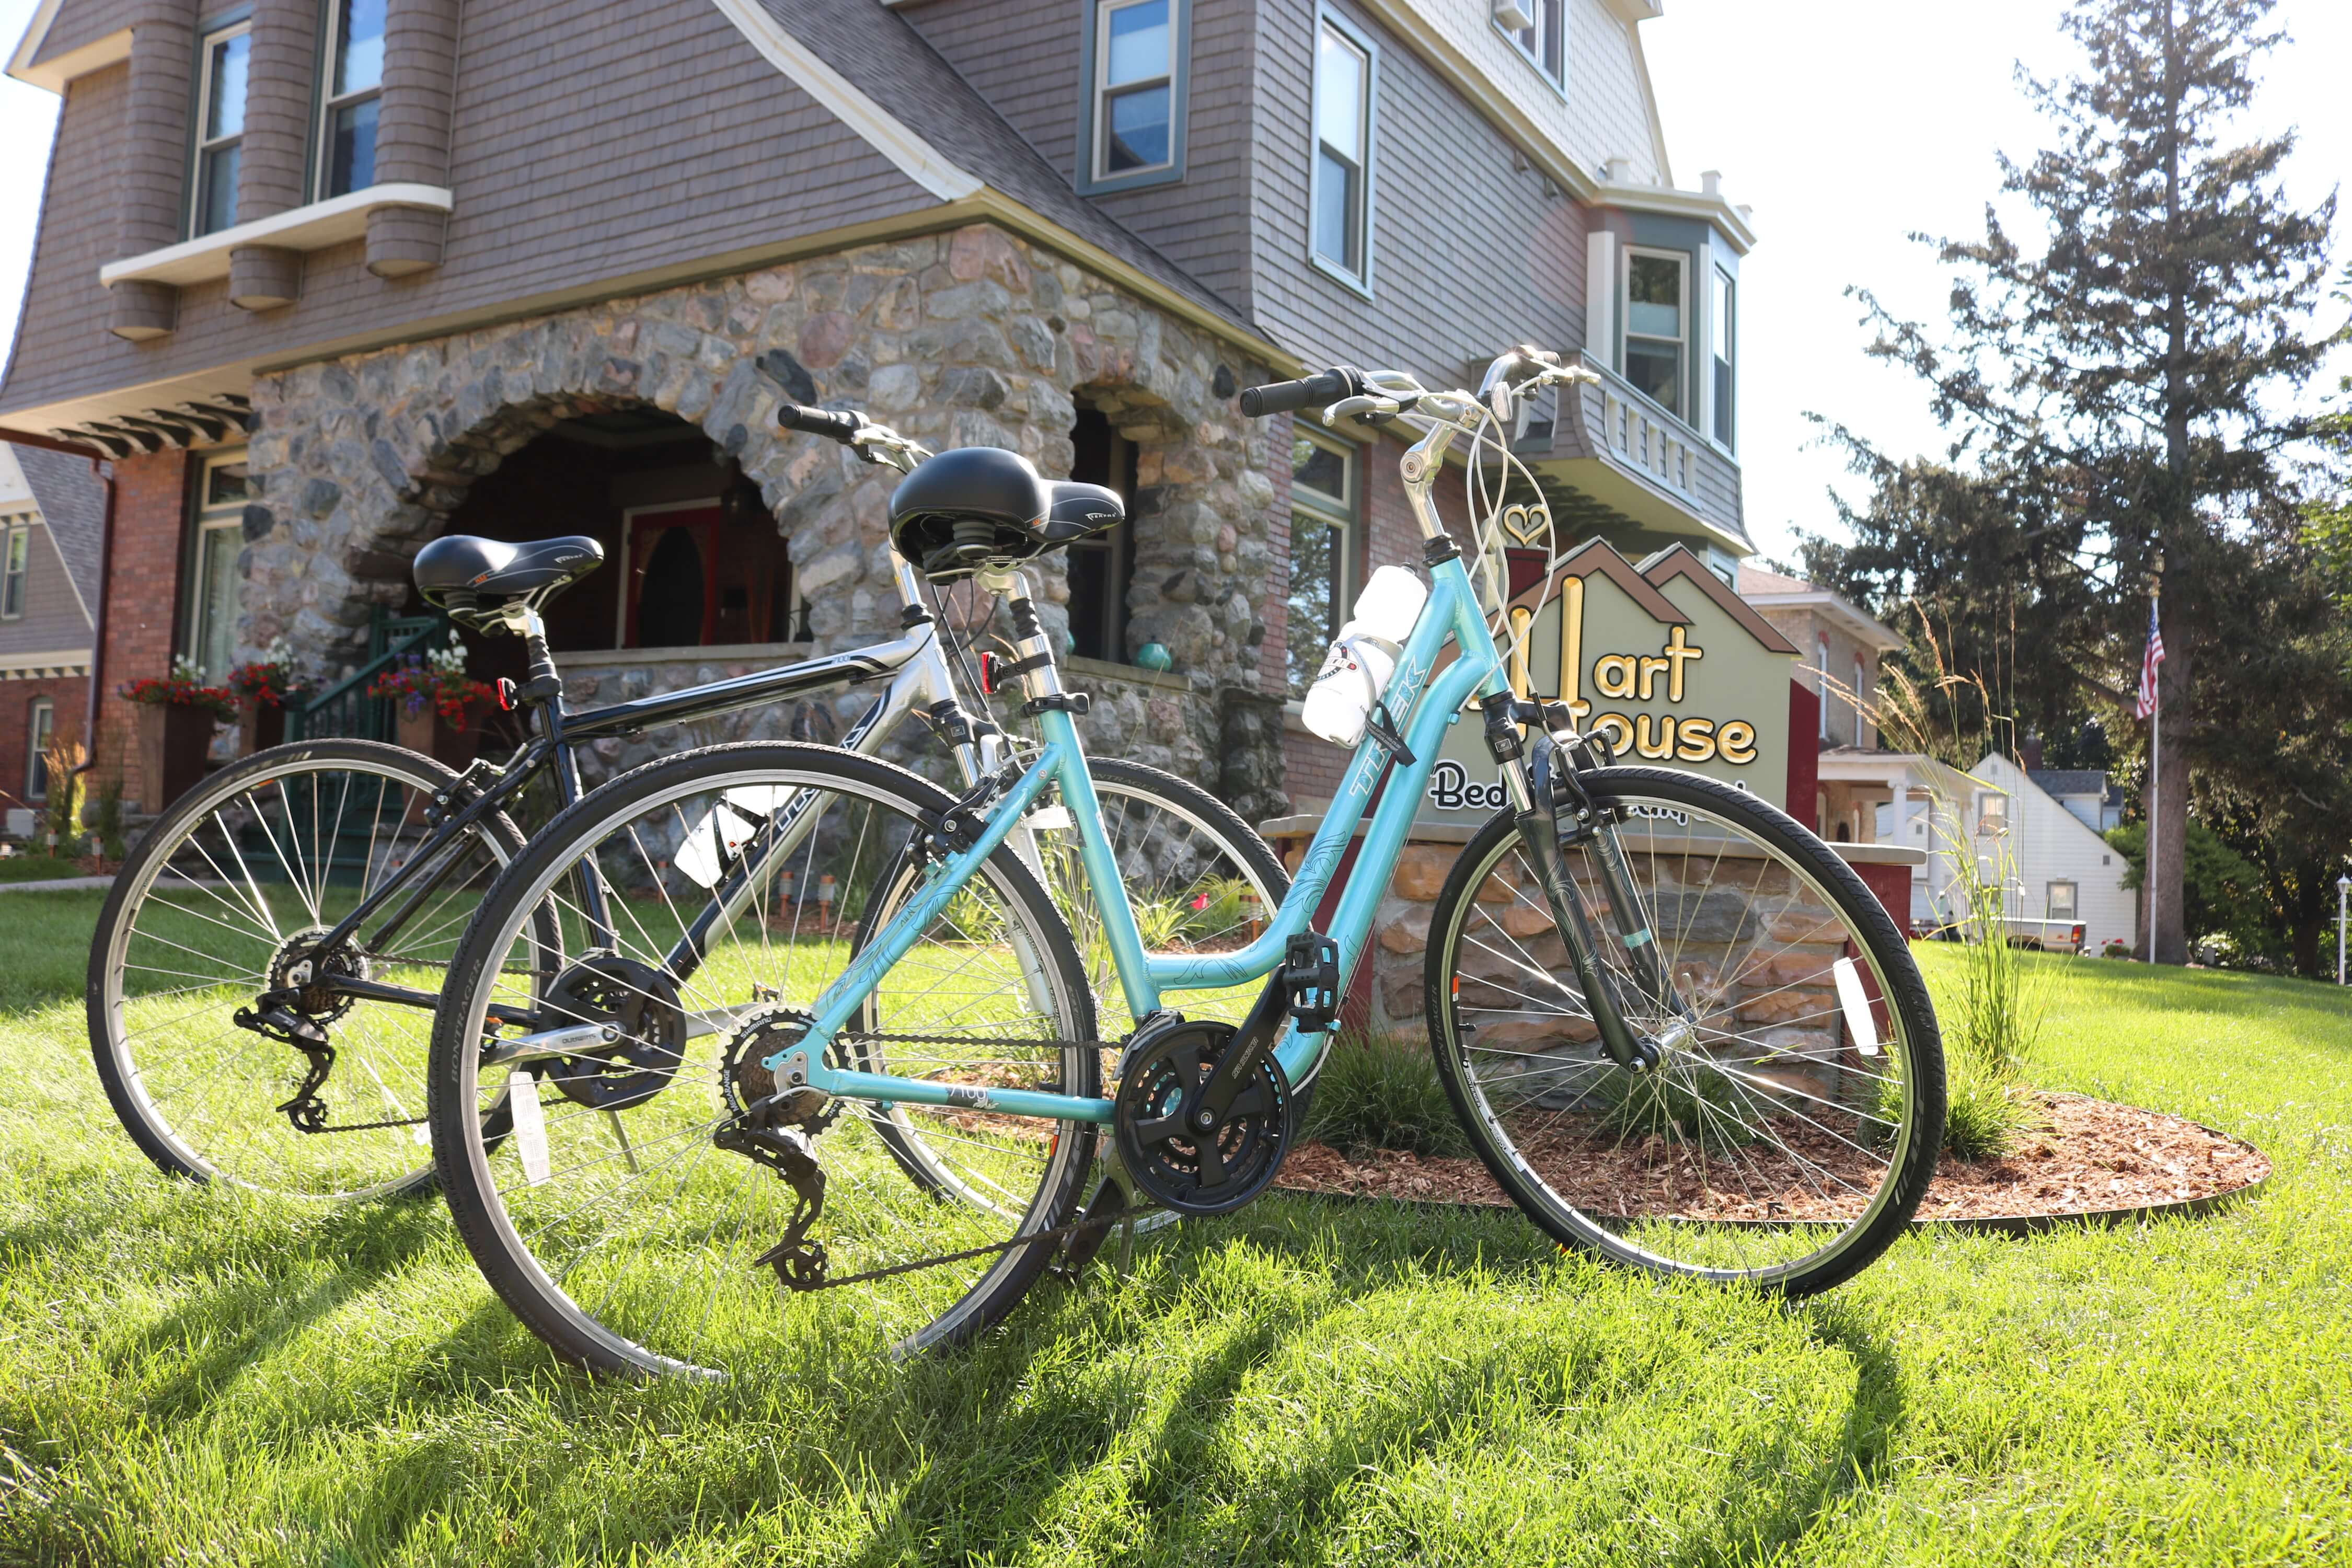 Bicycles sit on the lawn outside Hart House B&B